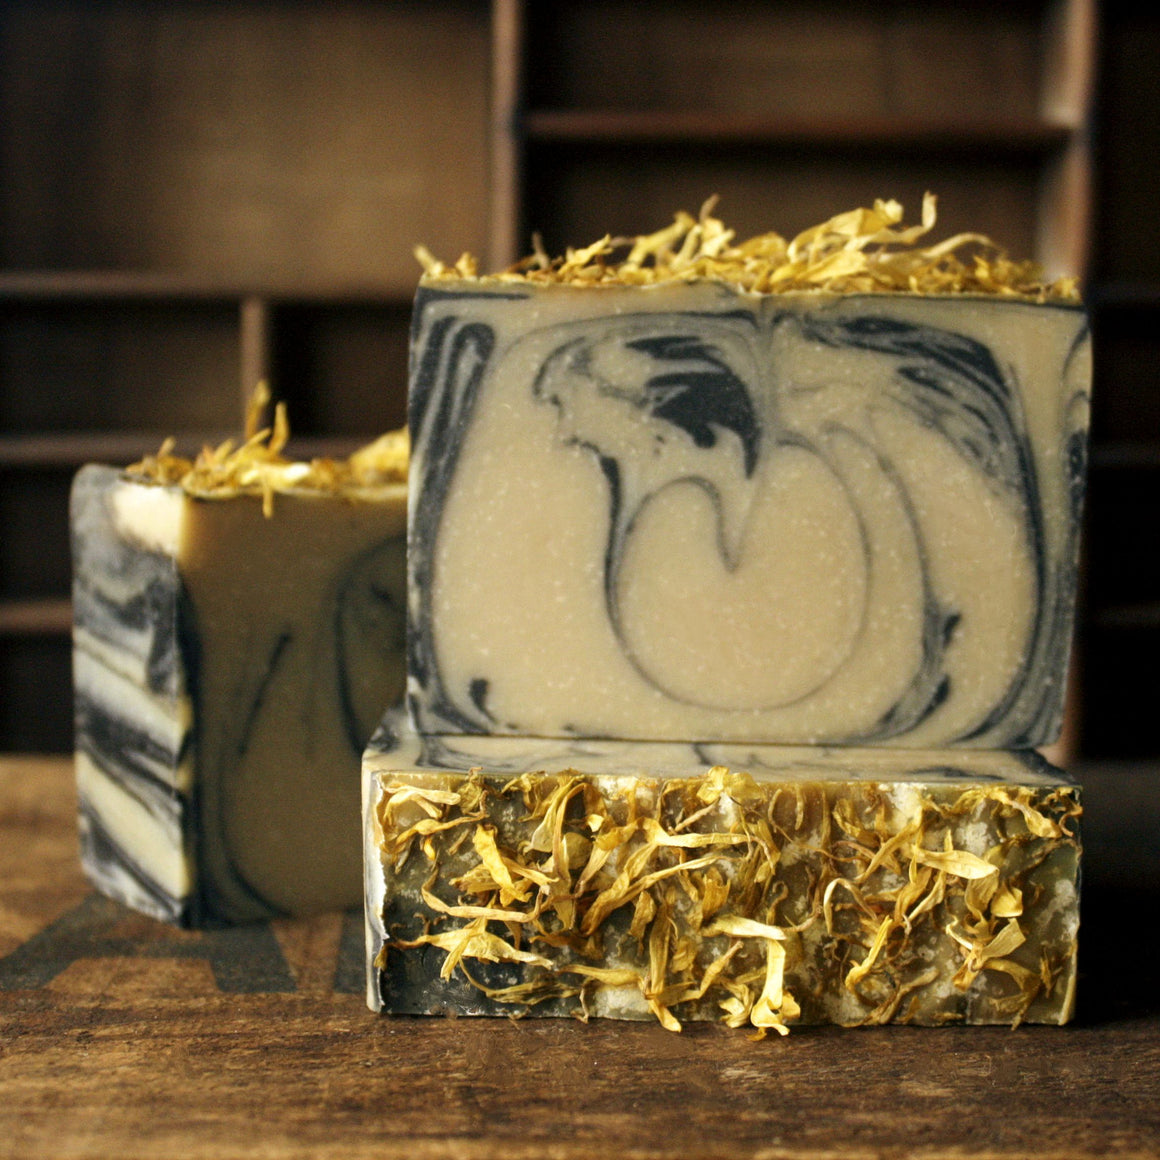 Cedar and Saffron Goat Milk Cold Process Soap